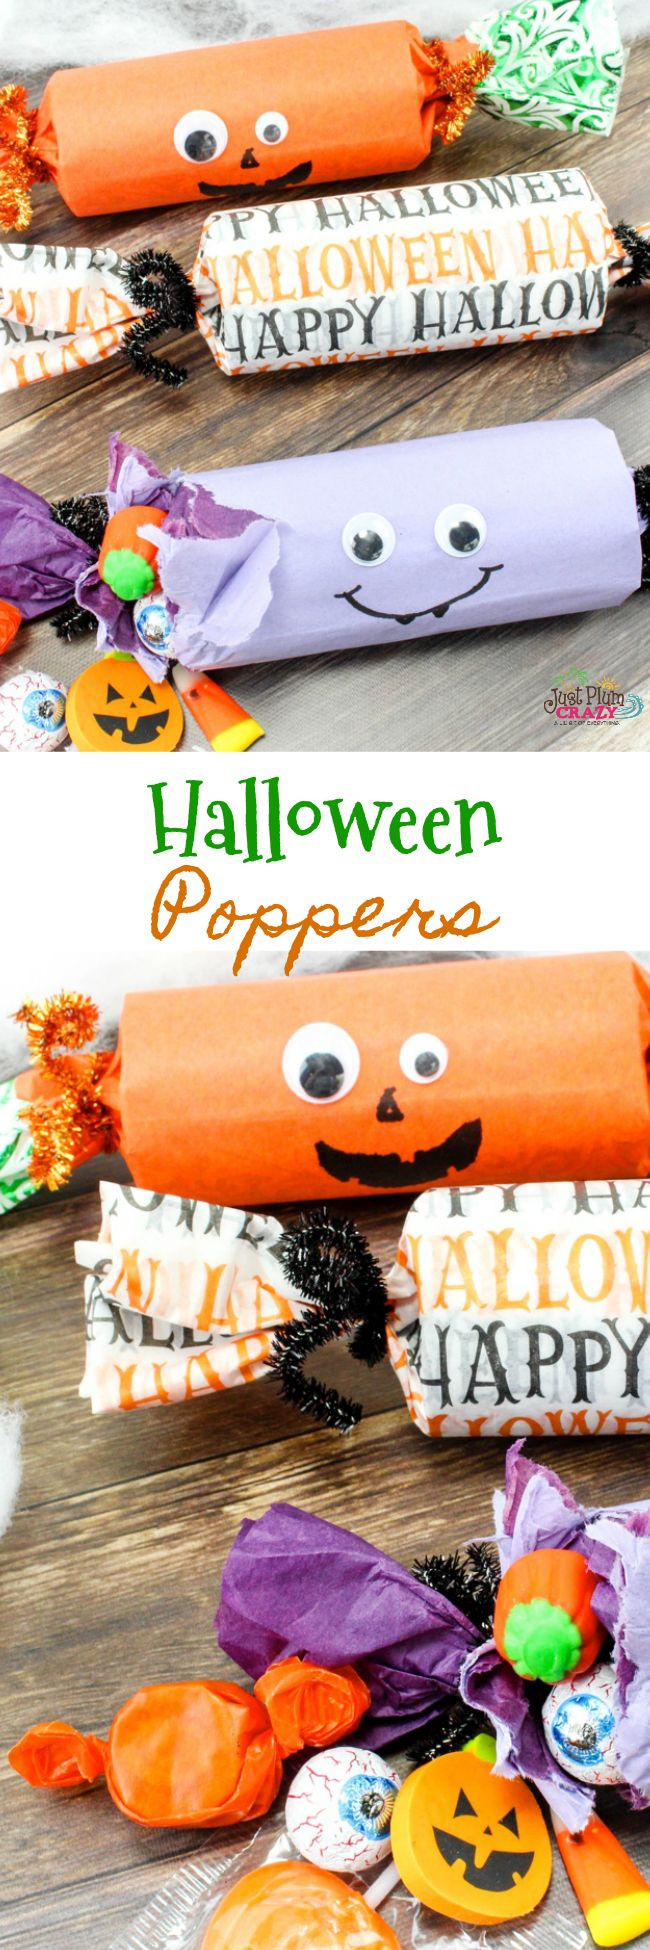 360 best Kids - Halloween Ideas images on Pinterest Halloween kid - Halloween Decorations For Kids